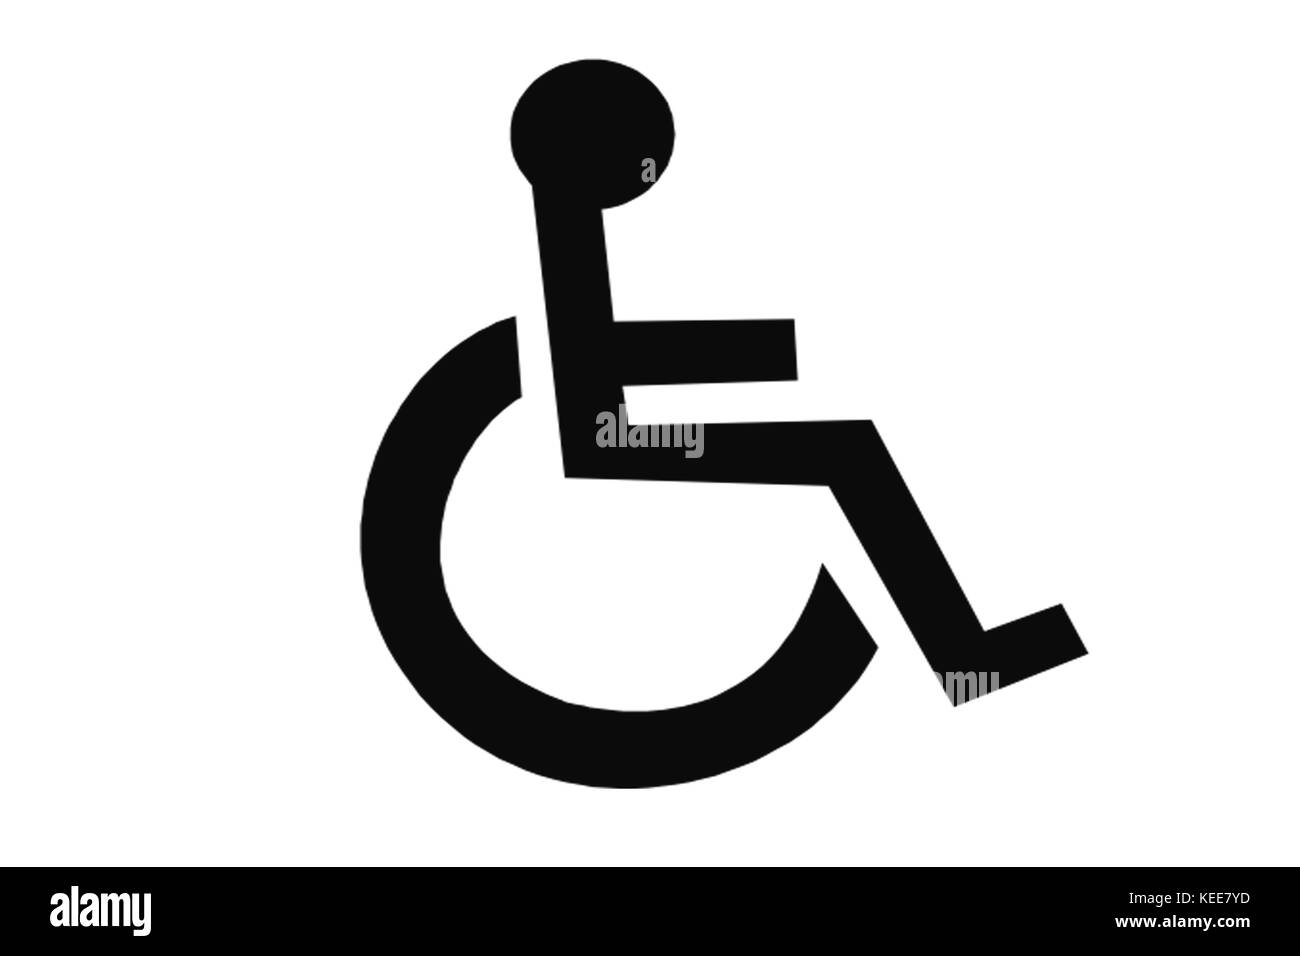 disability disabled person on wheelchair or invalid chair on white background - Stock Image